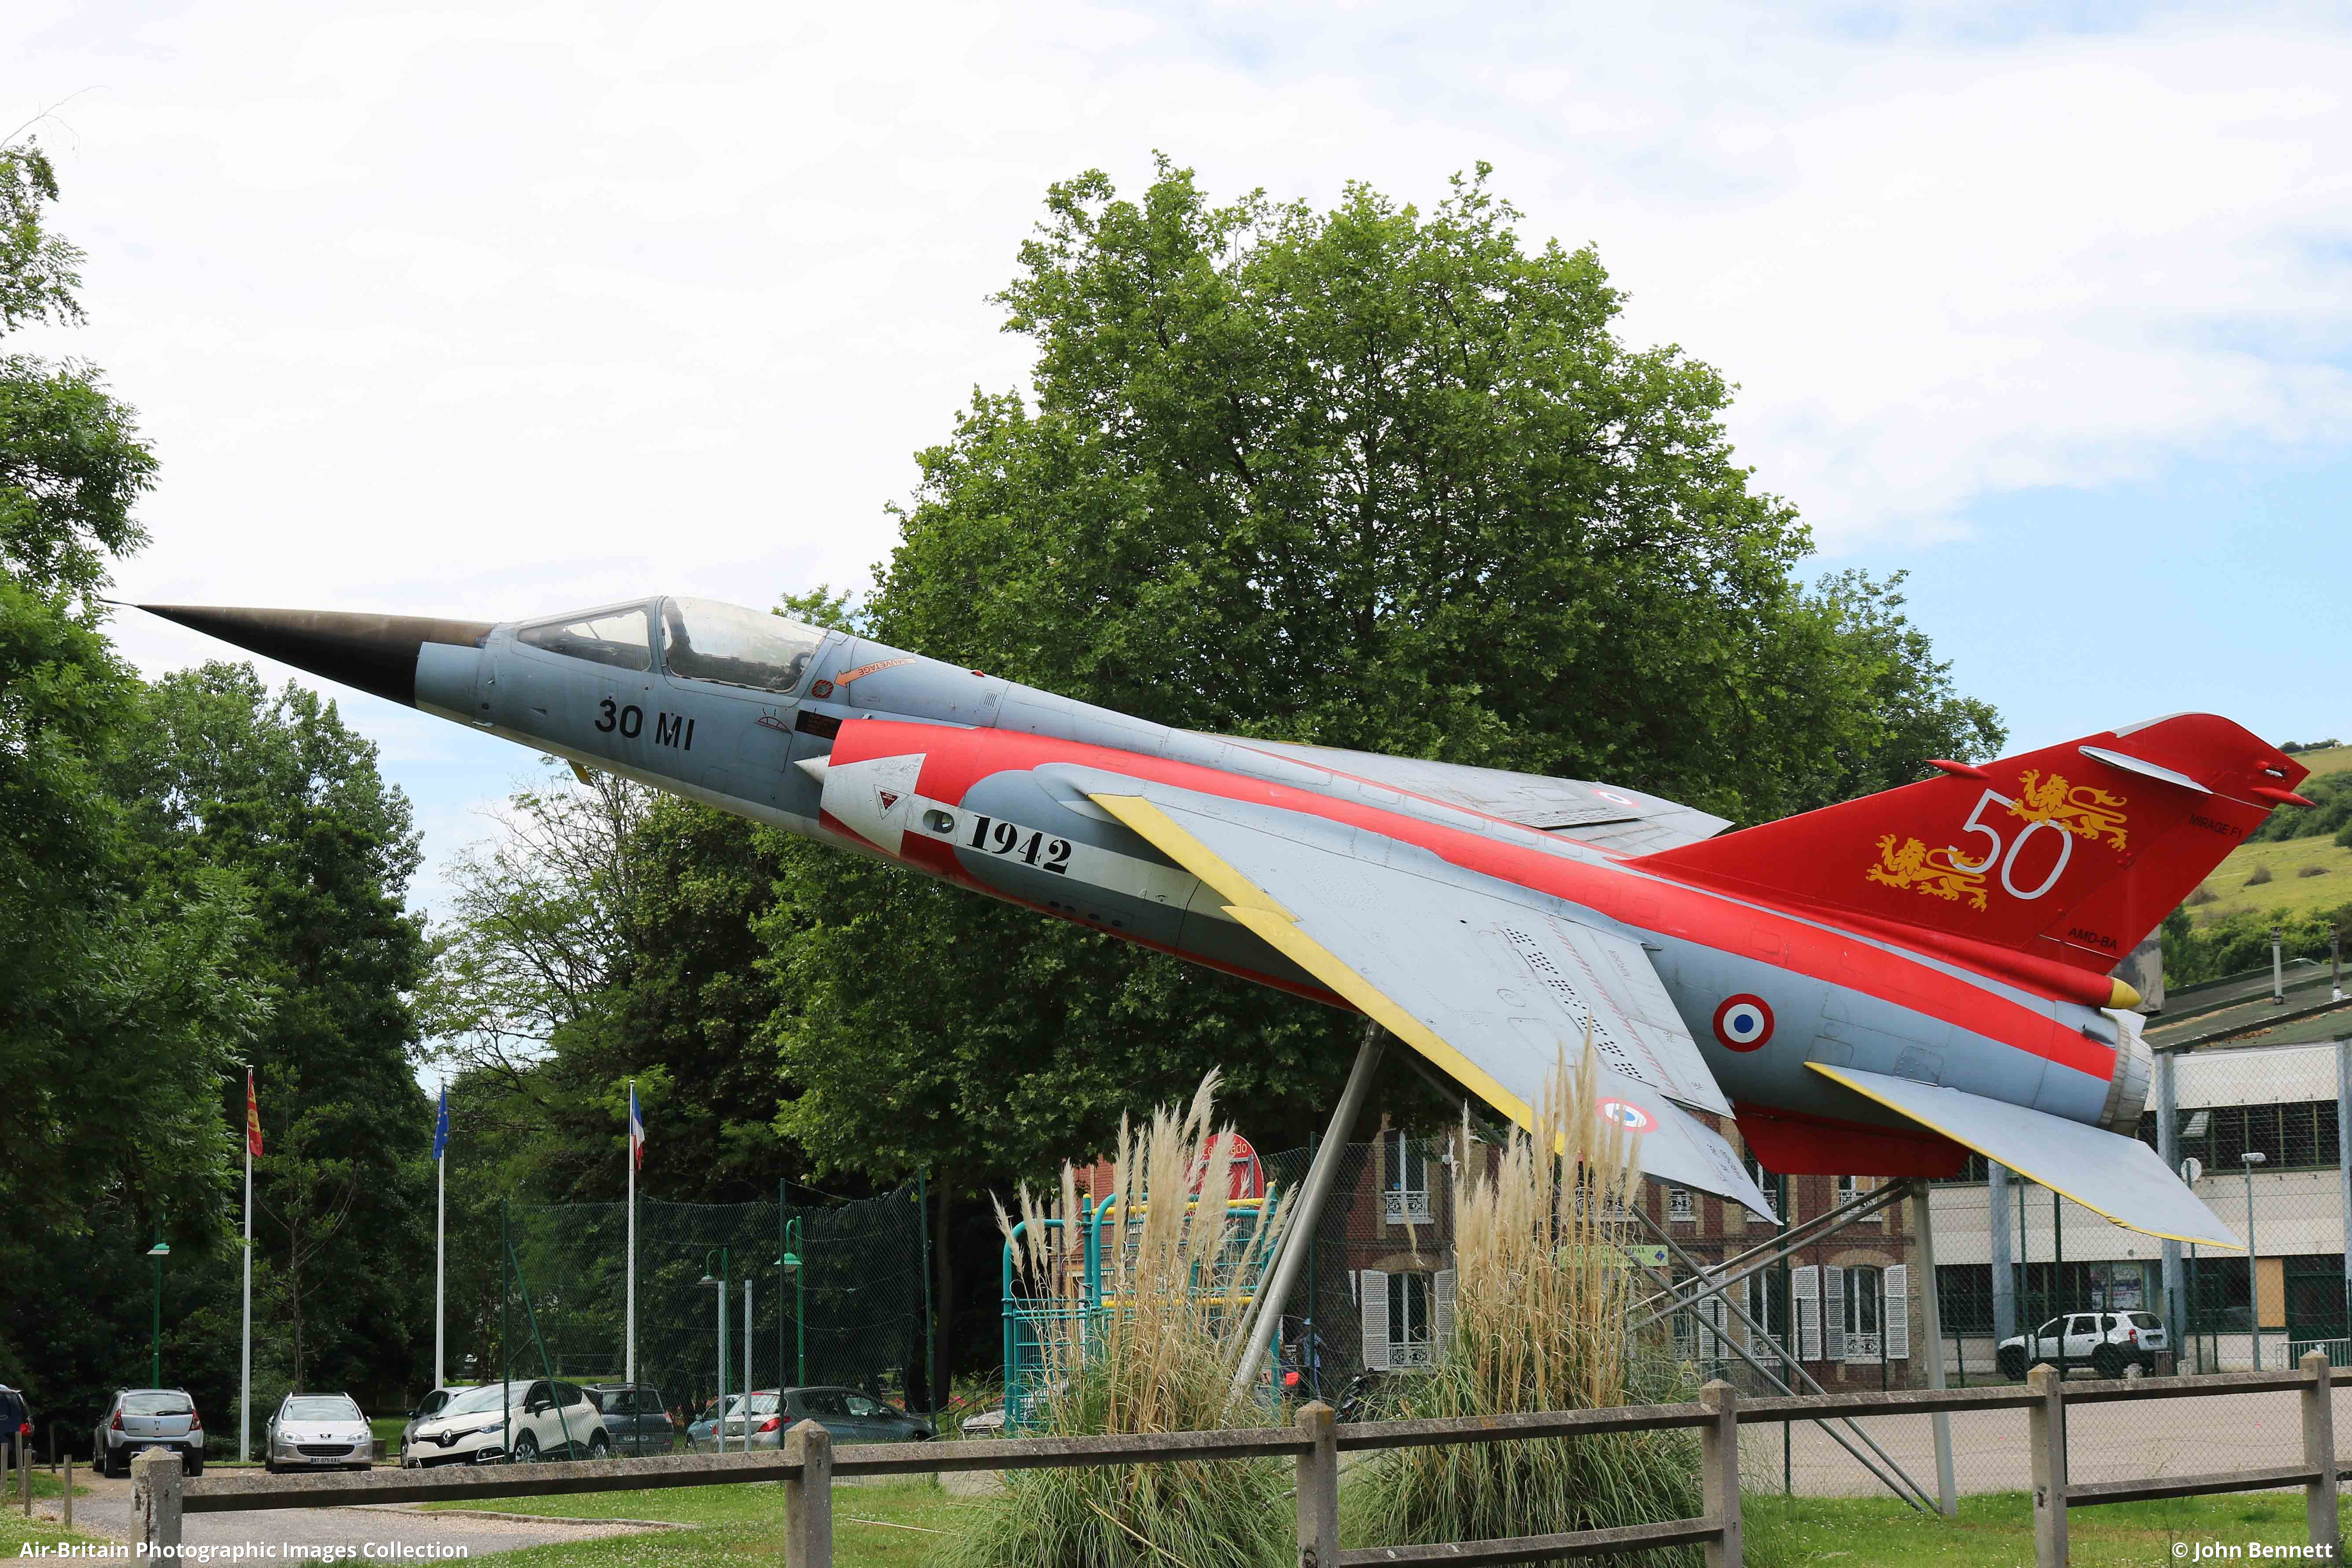 Aviation Photographs Of Location Les Andelys Musee Normandie Nieman Abpic